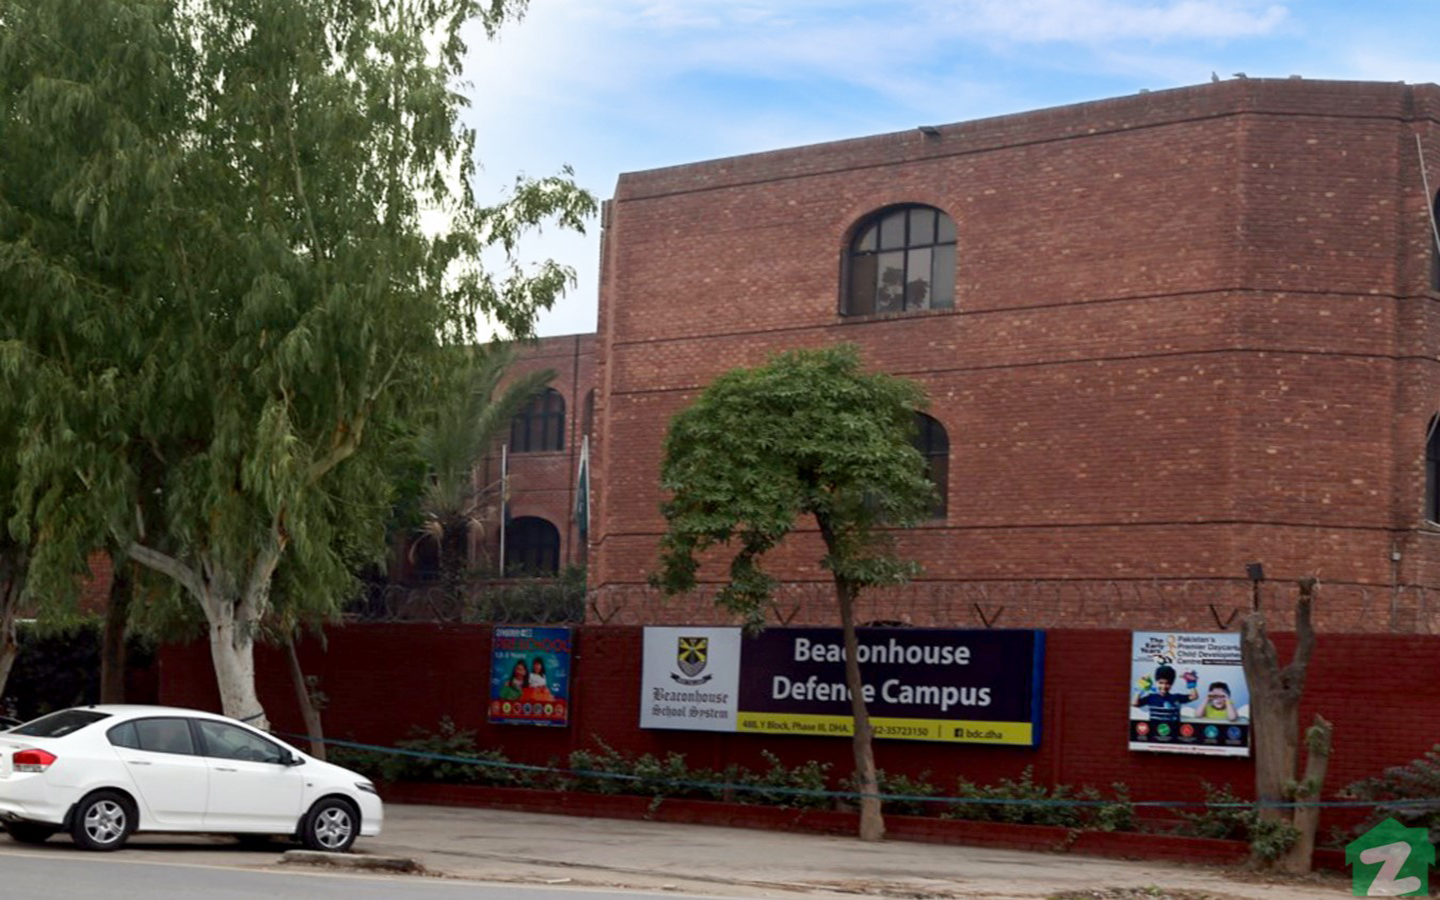 Beaconhouse Defence Campus in DHA, Lahore